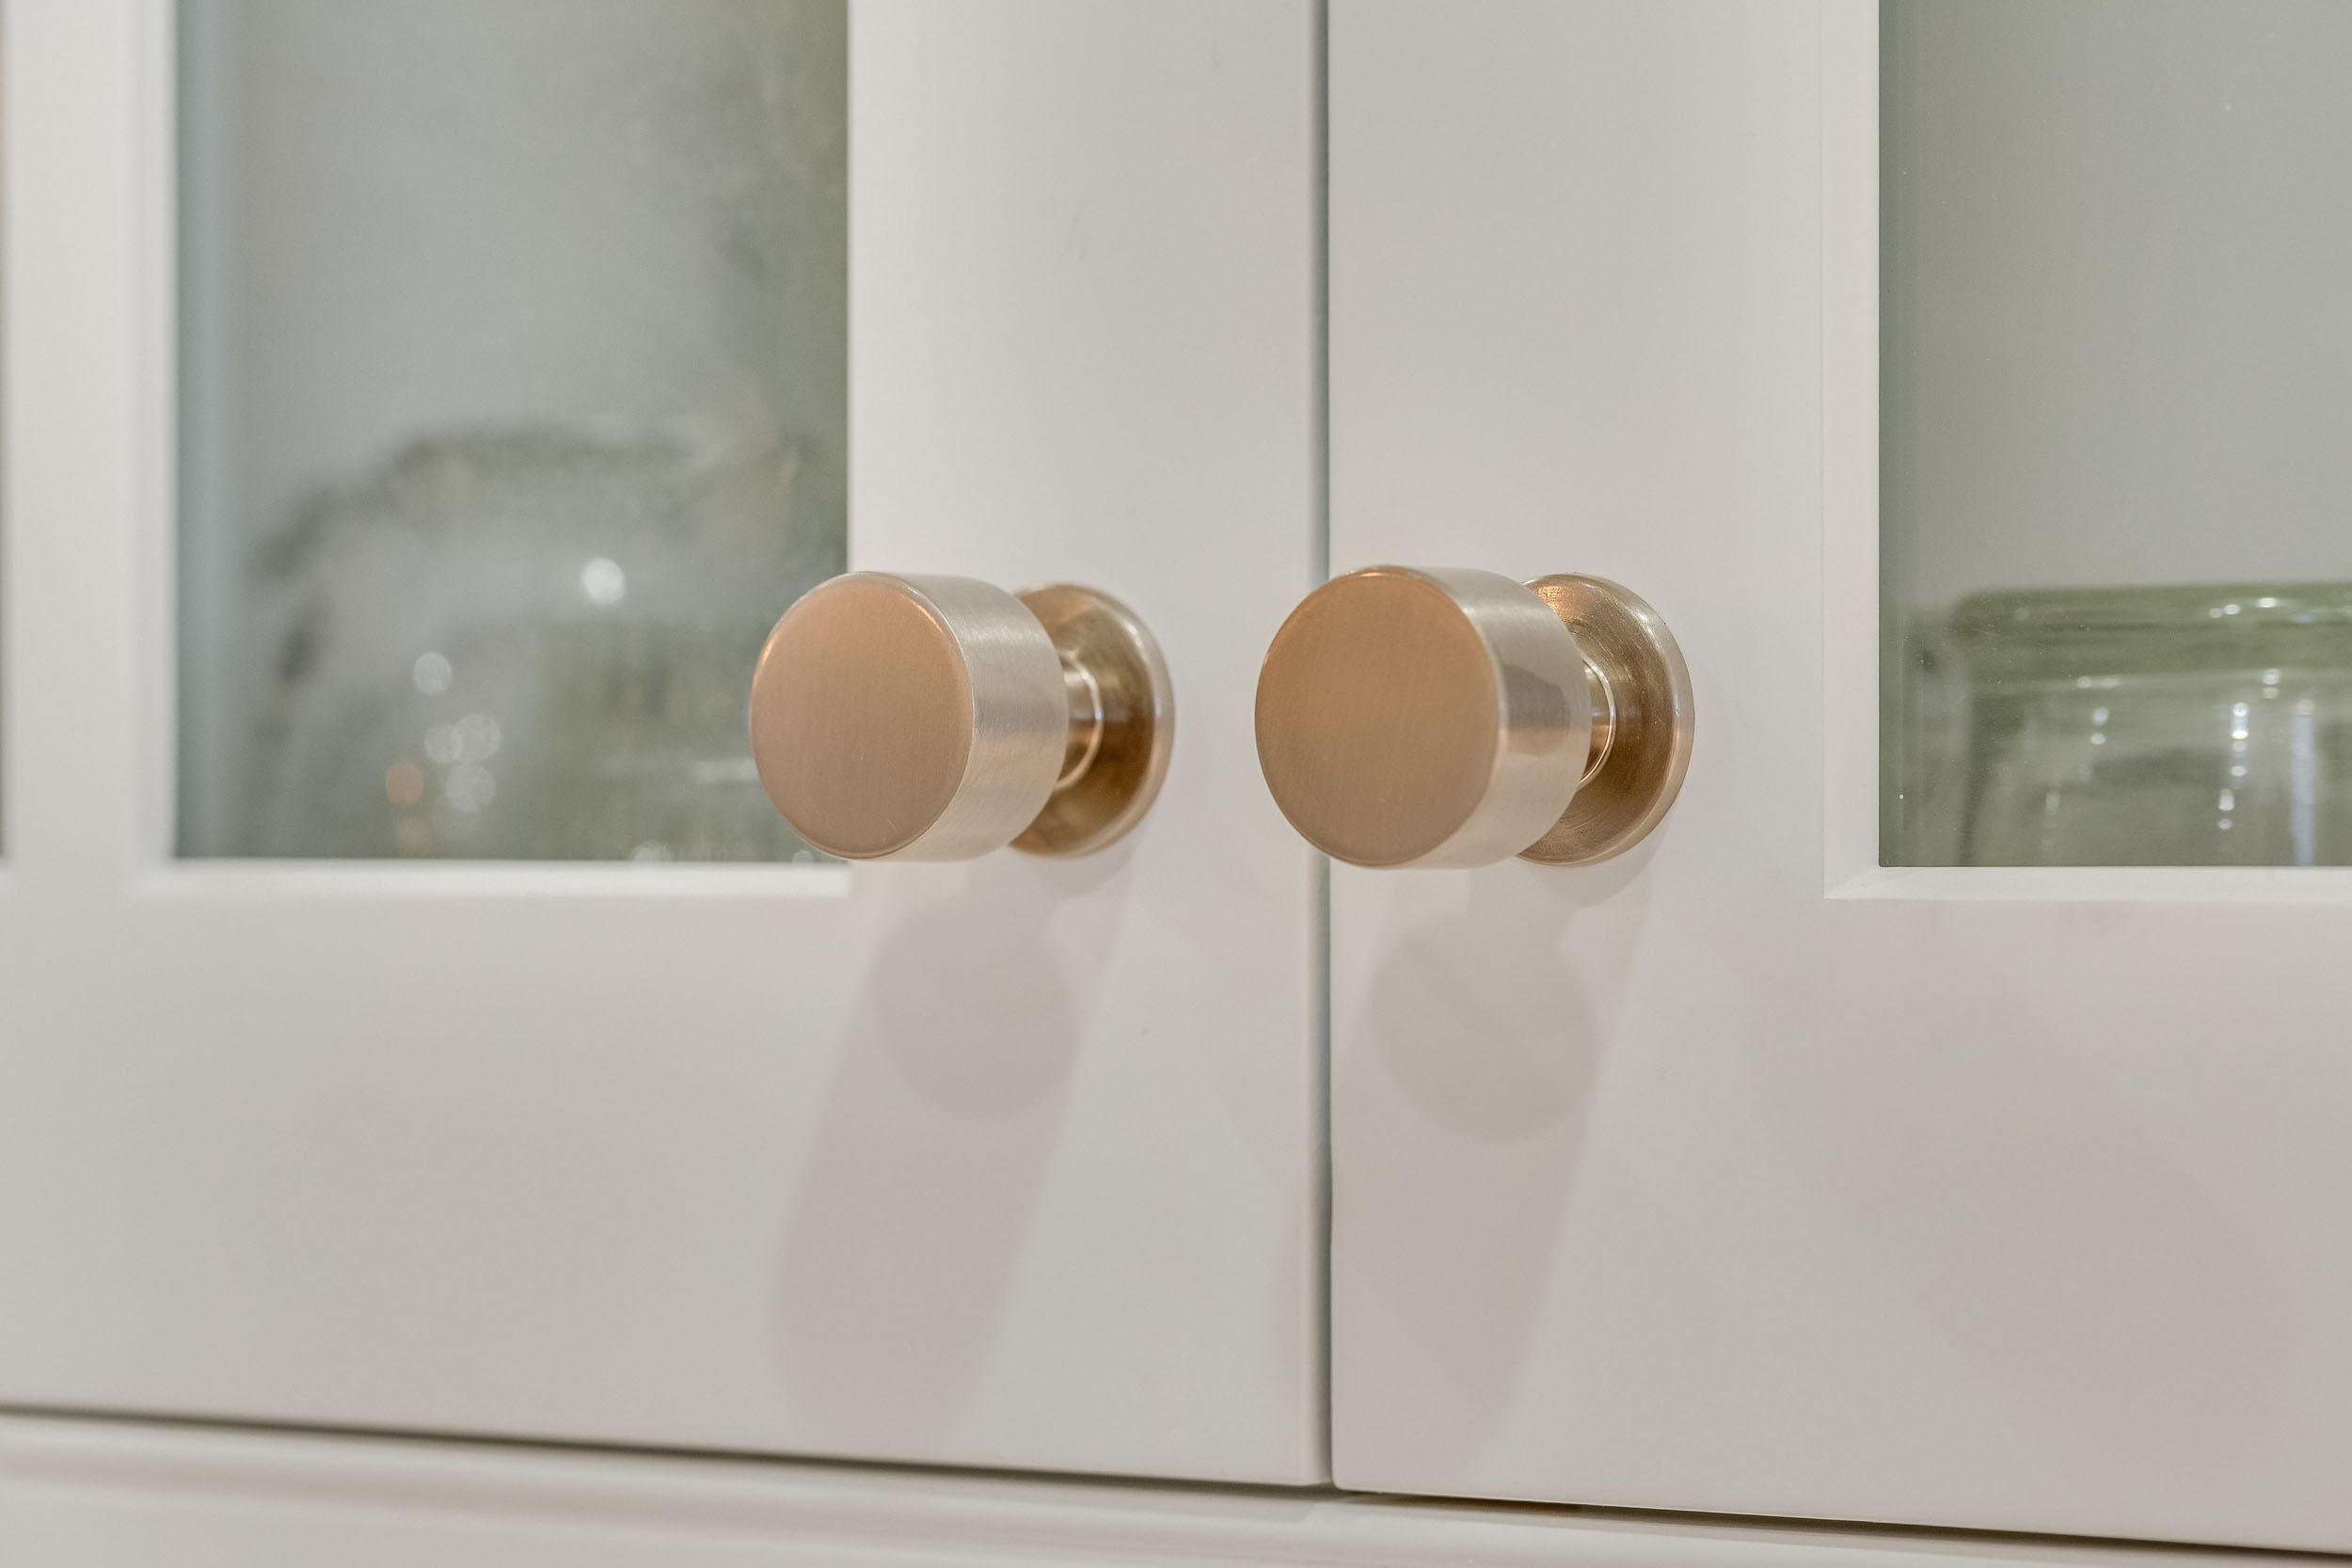 Satin nickel upper cabinet hardware knobs by Top Knobs.